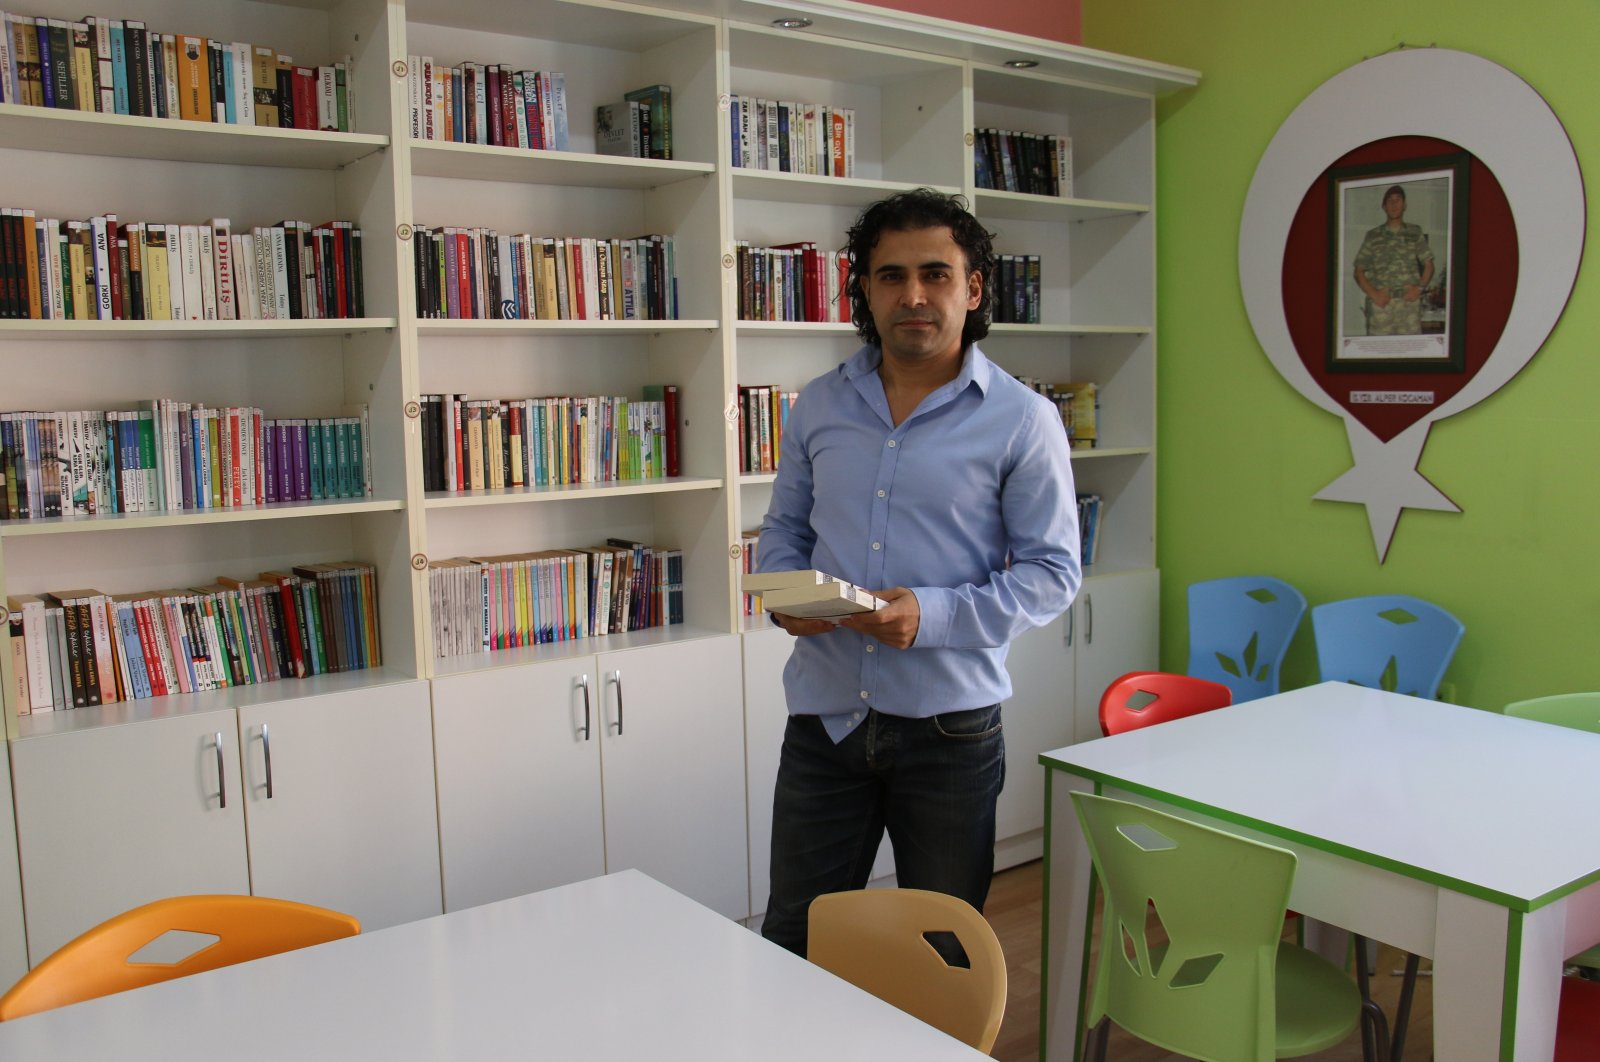 Sercan Kürklü of the Martyrs Libraries Collective poses with donated books in a library built in the memory of a martyred Turkish soldier, Ankara, Turkey, Nov. 29, 2020. (IHA Photo)